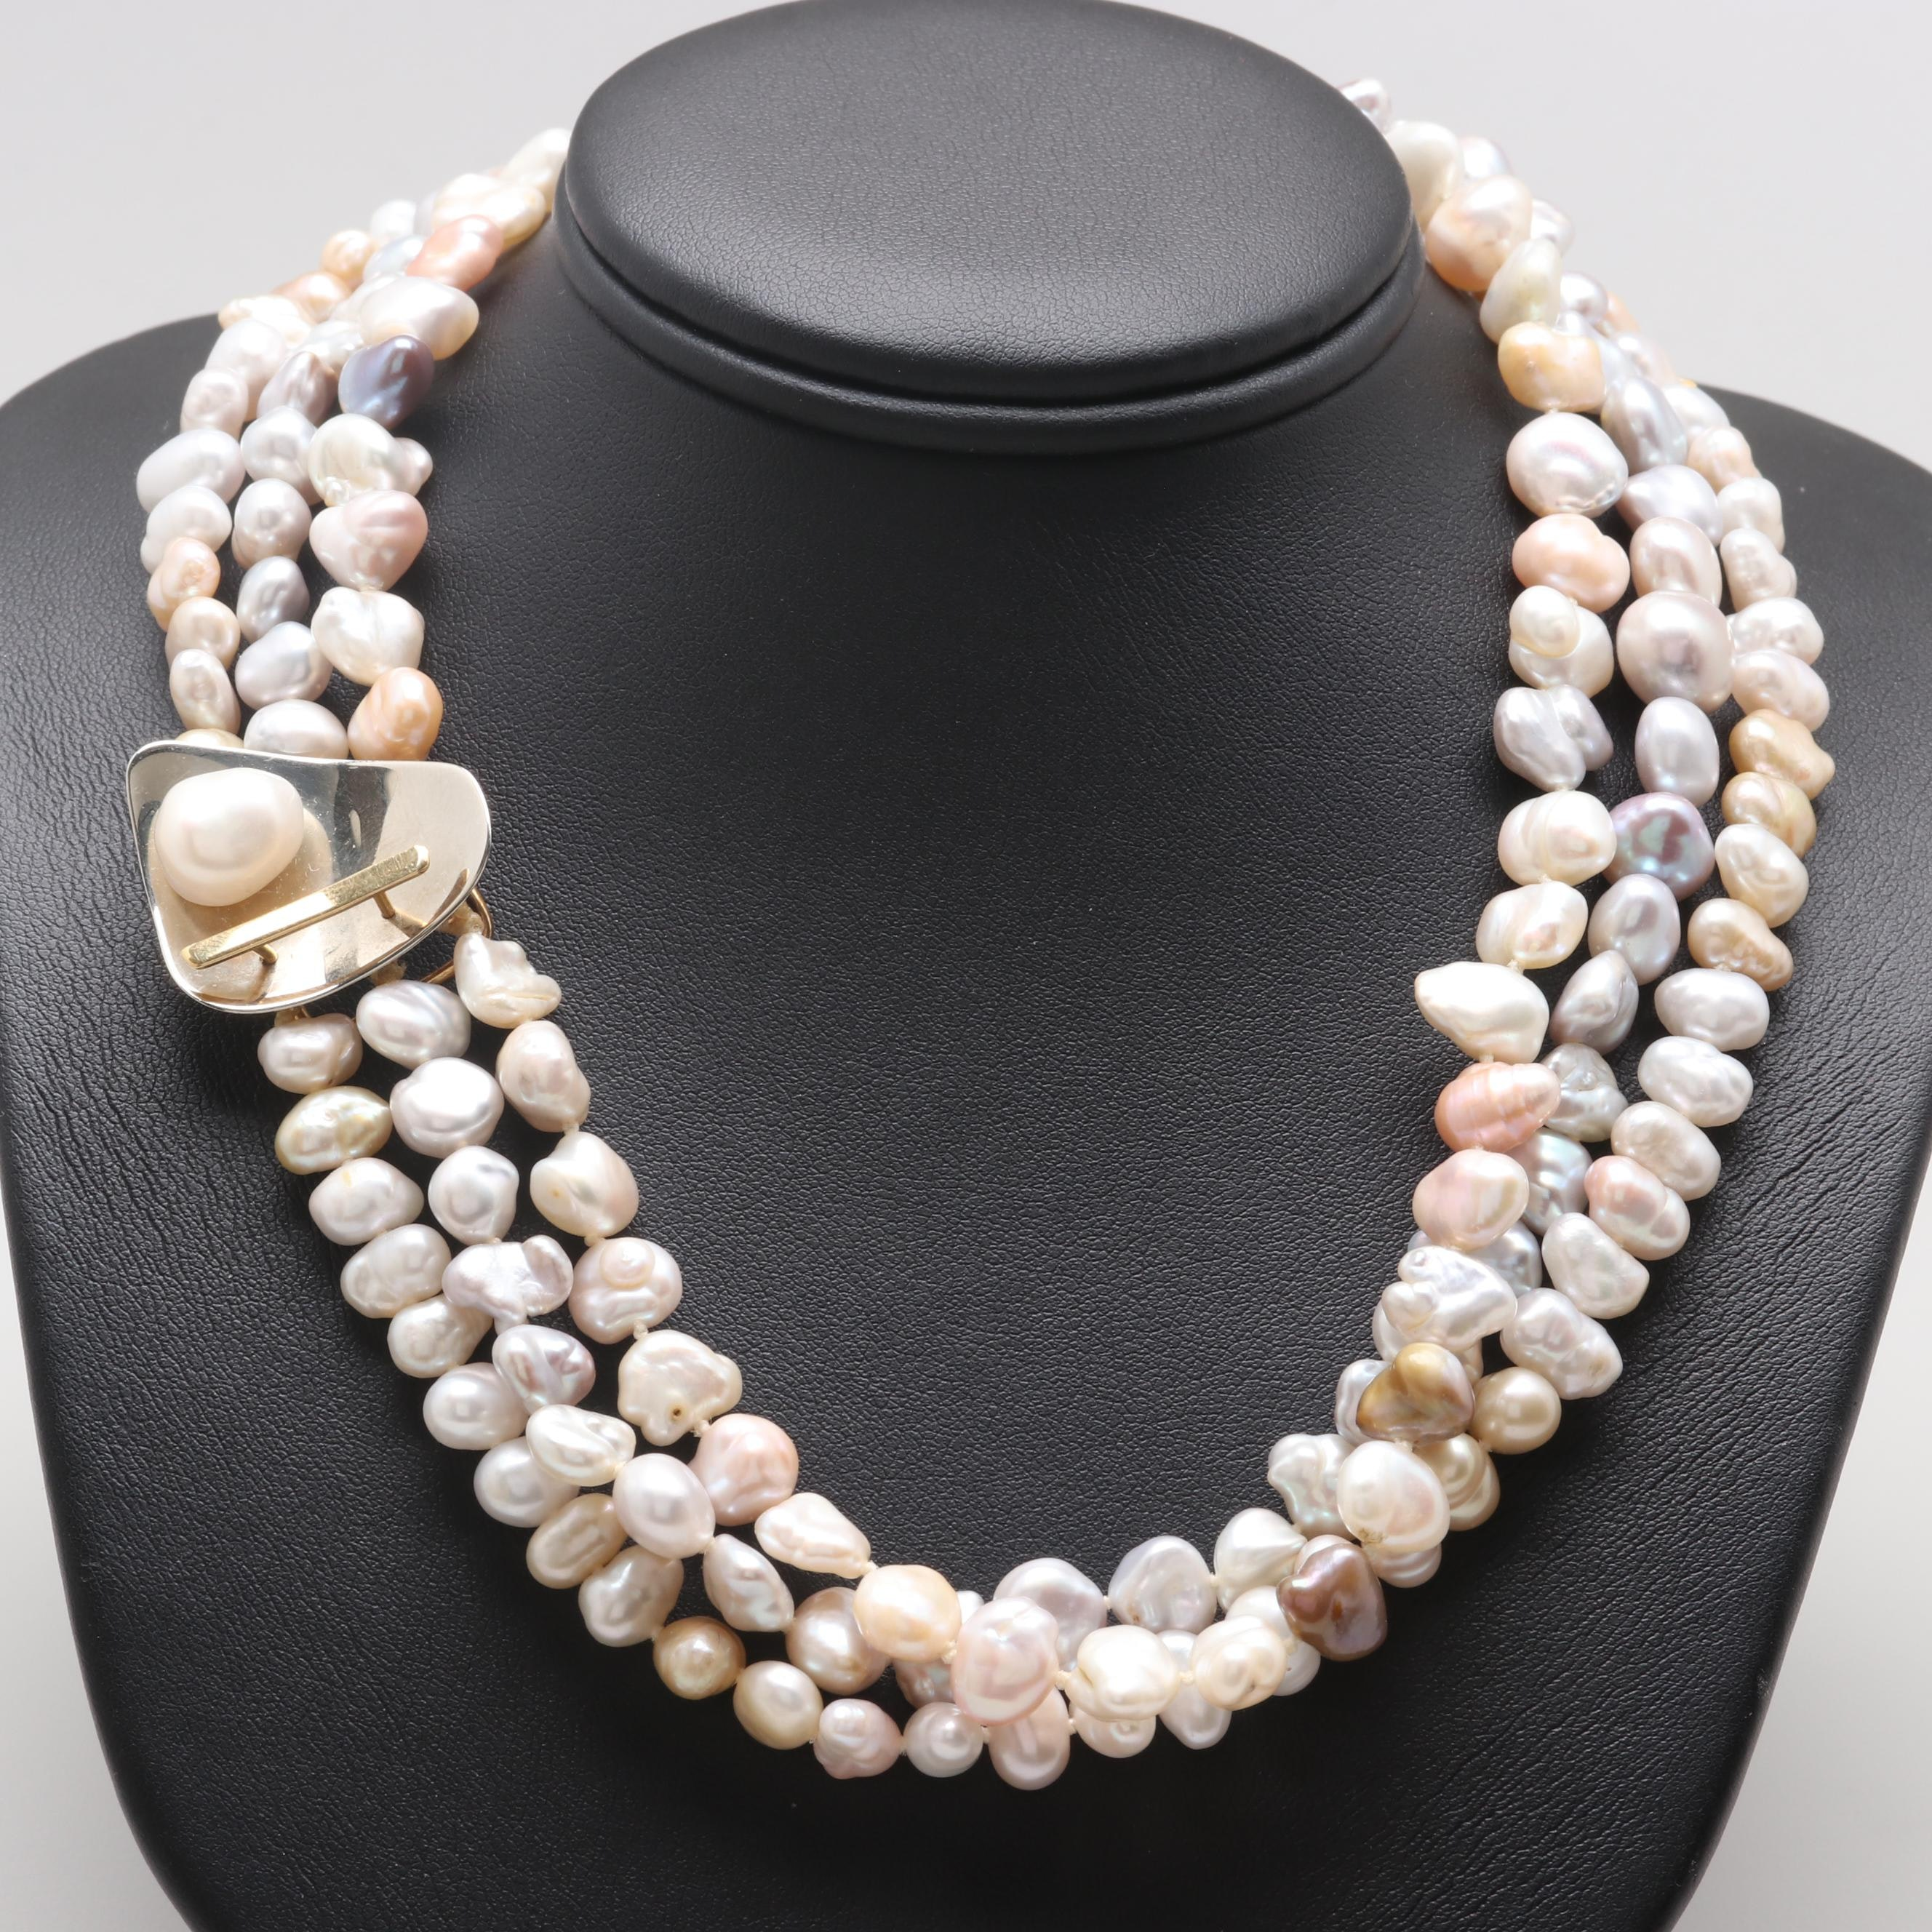 Circa 1982 Betsy Fuller 18K Gold Cultured Pearl Multi Strand Necklace